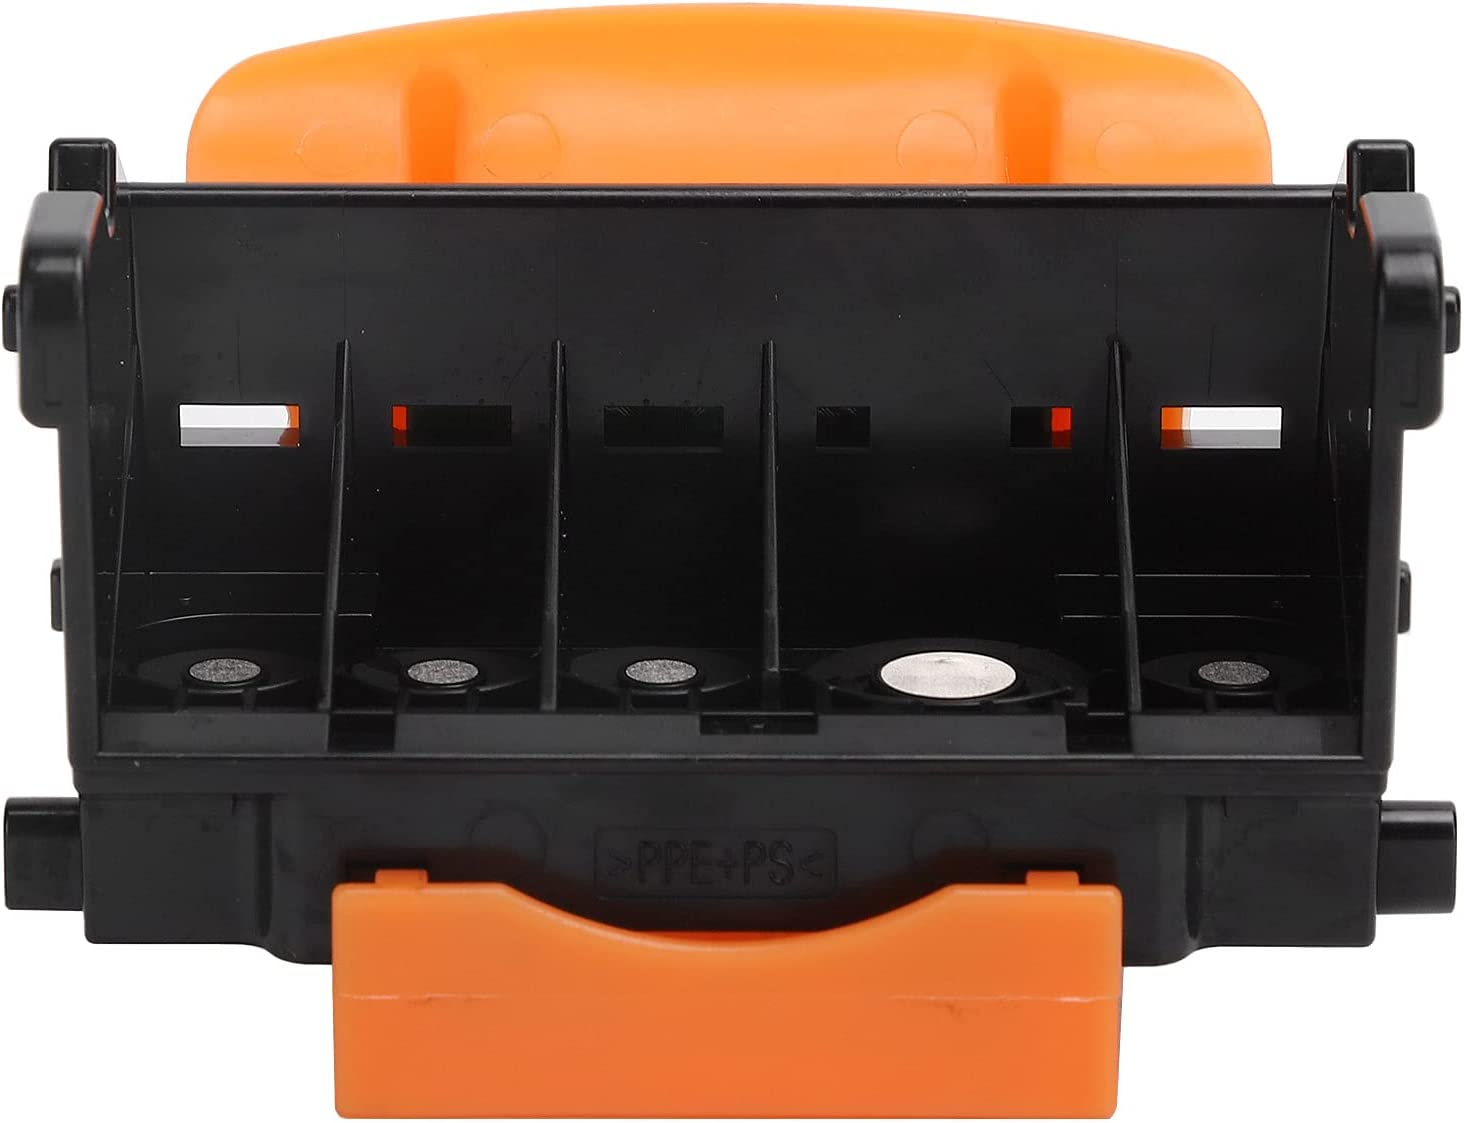 Wuqioei Replacement Ink Cartridges for Qy6‑0073 IP3600 IP3680 MP540 MP545 MP550 MP558 MP560 MP568 MP620 MP628 MX860 MX870 MG5150, Printer Head Print Accessories(Colorful)